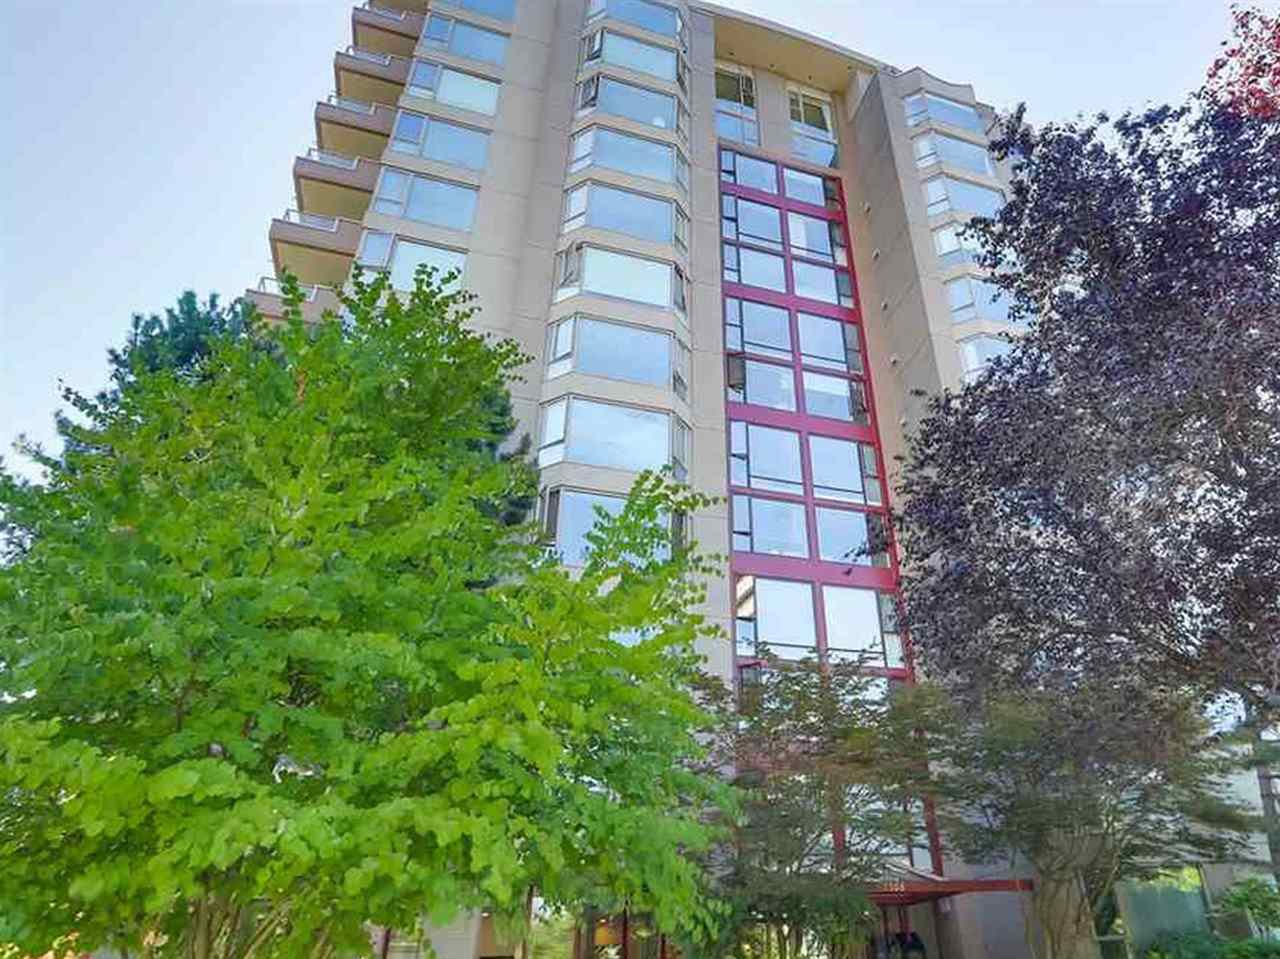 """Main Photo: PH2 2108 W 38TH Avenue in Vancouver: Kerrisdale Condo for sale in """"The Wilshire"""" (Vancouver West)  : MLS®# R2403641"""